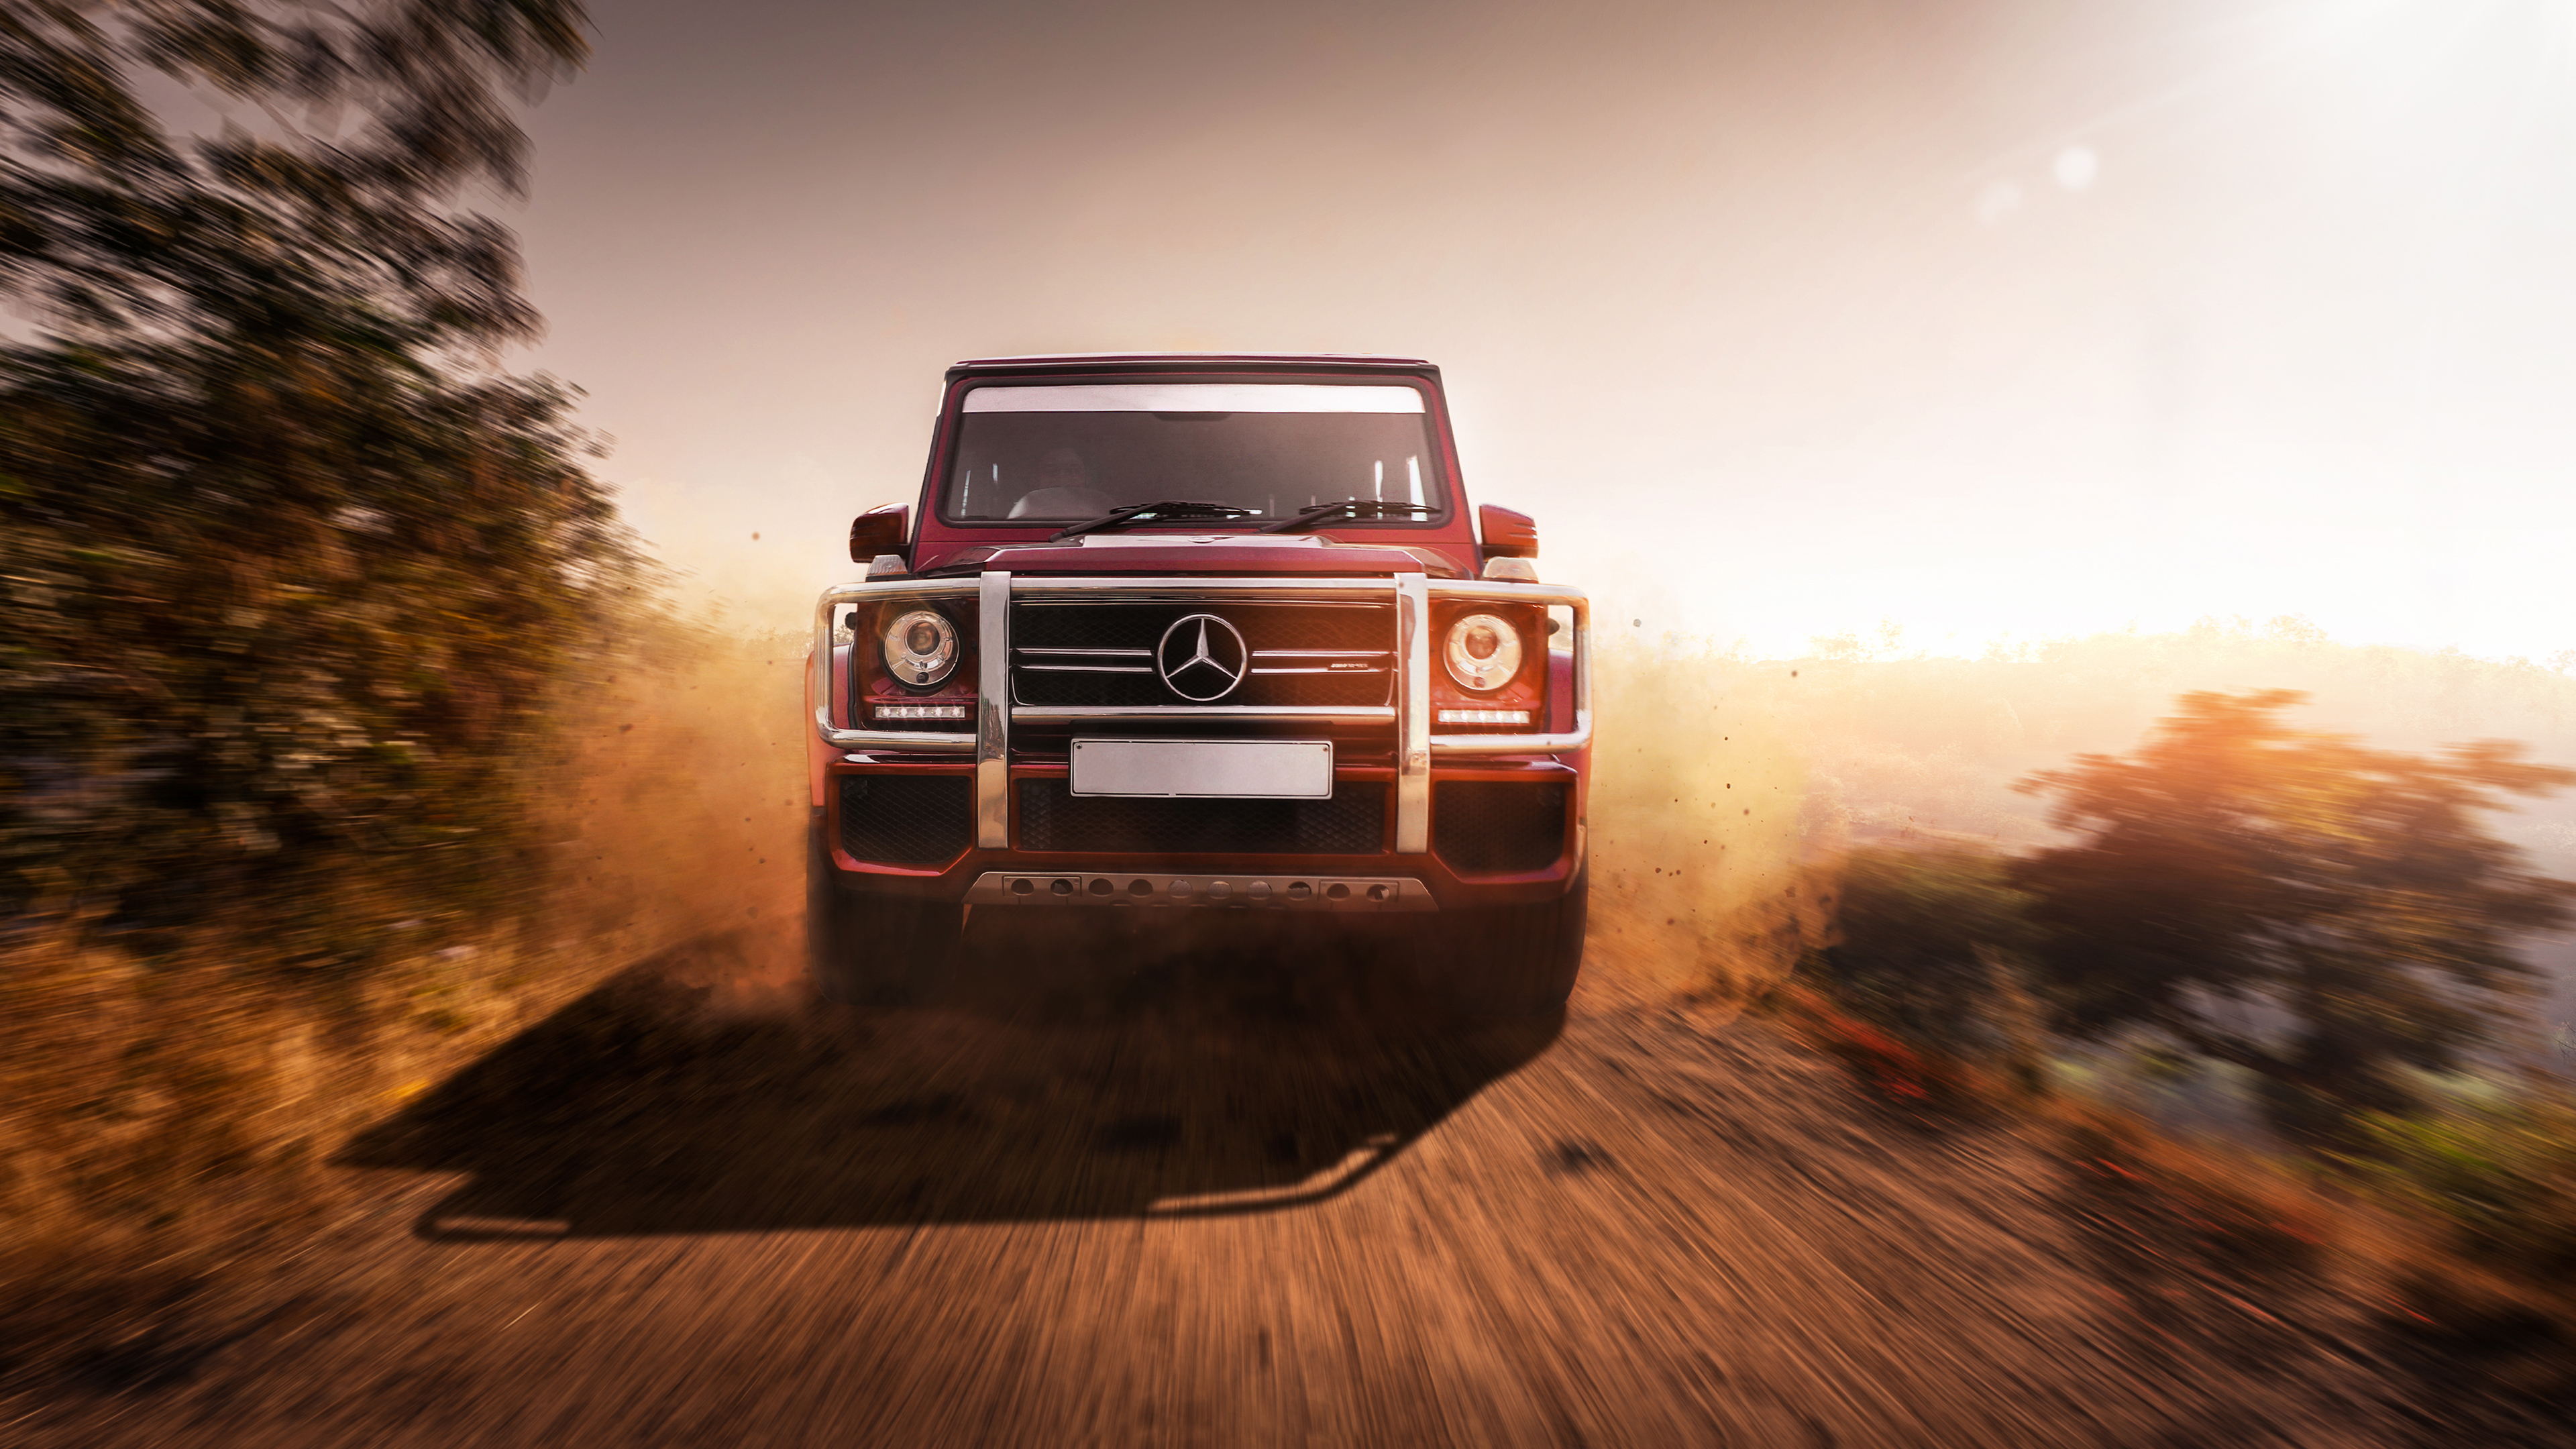 G63 Amg Wallpaper 4k Albumccars Cars Images Collection